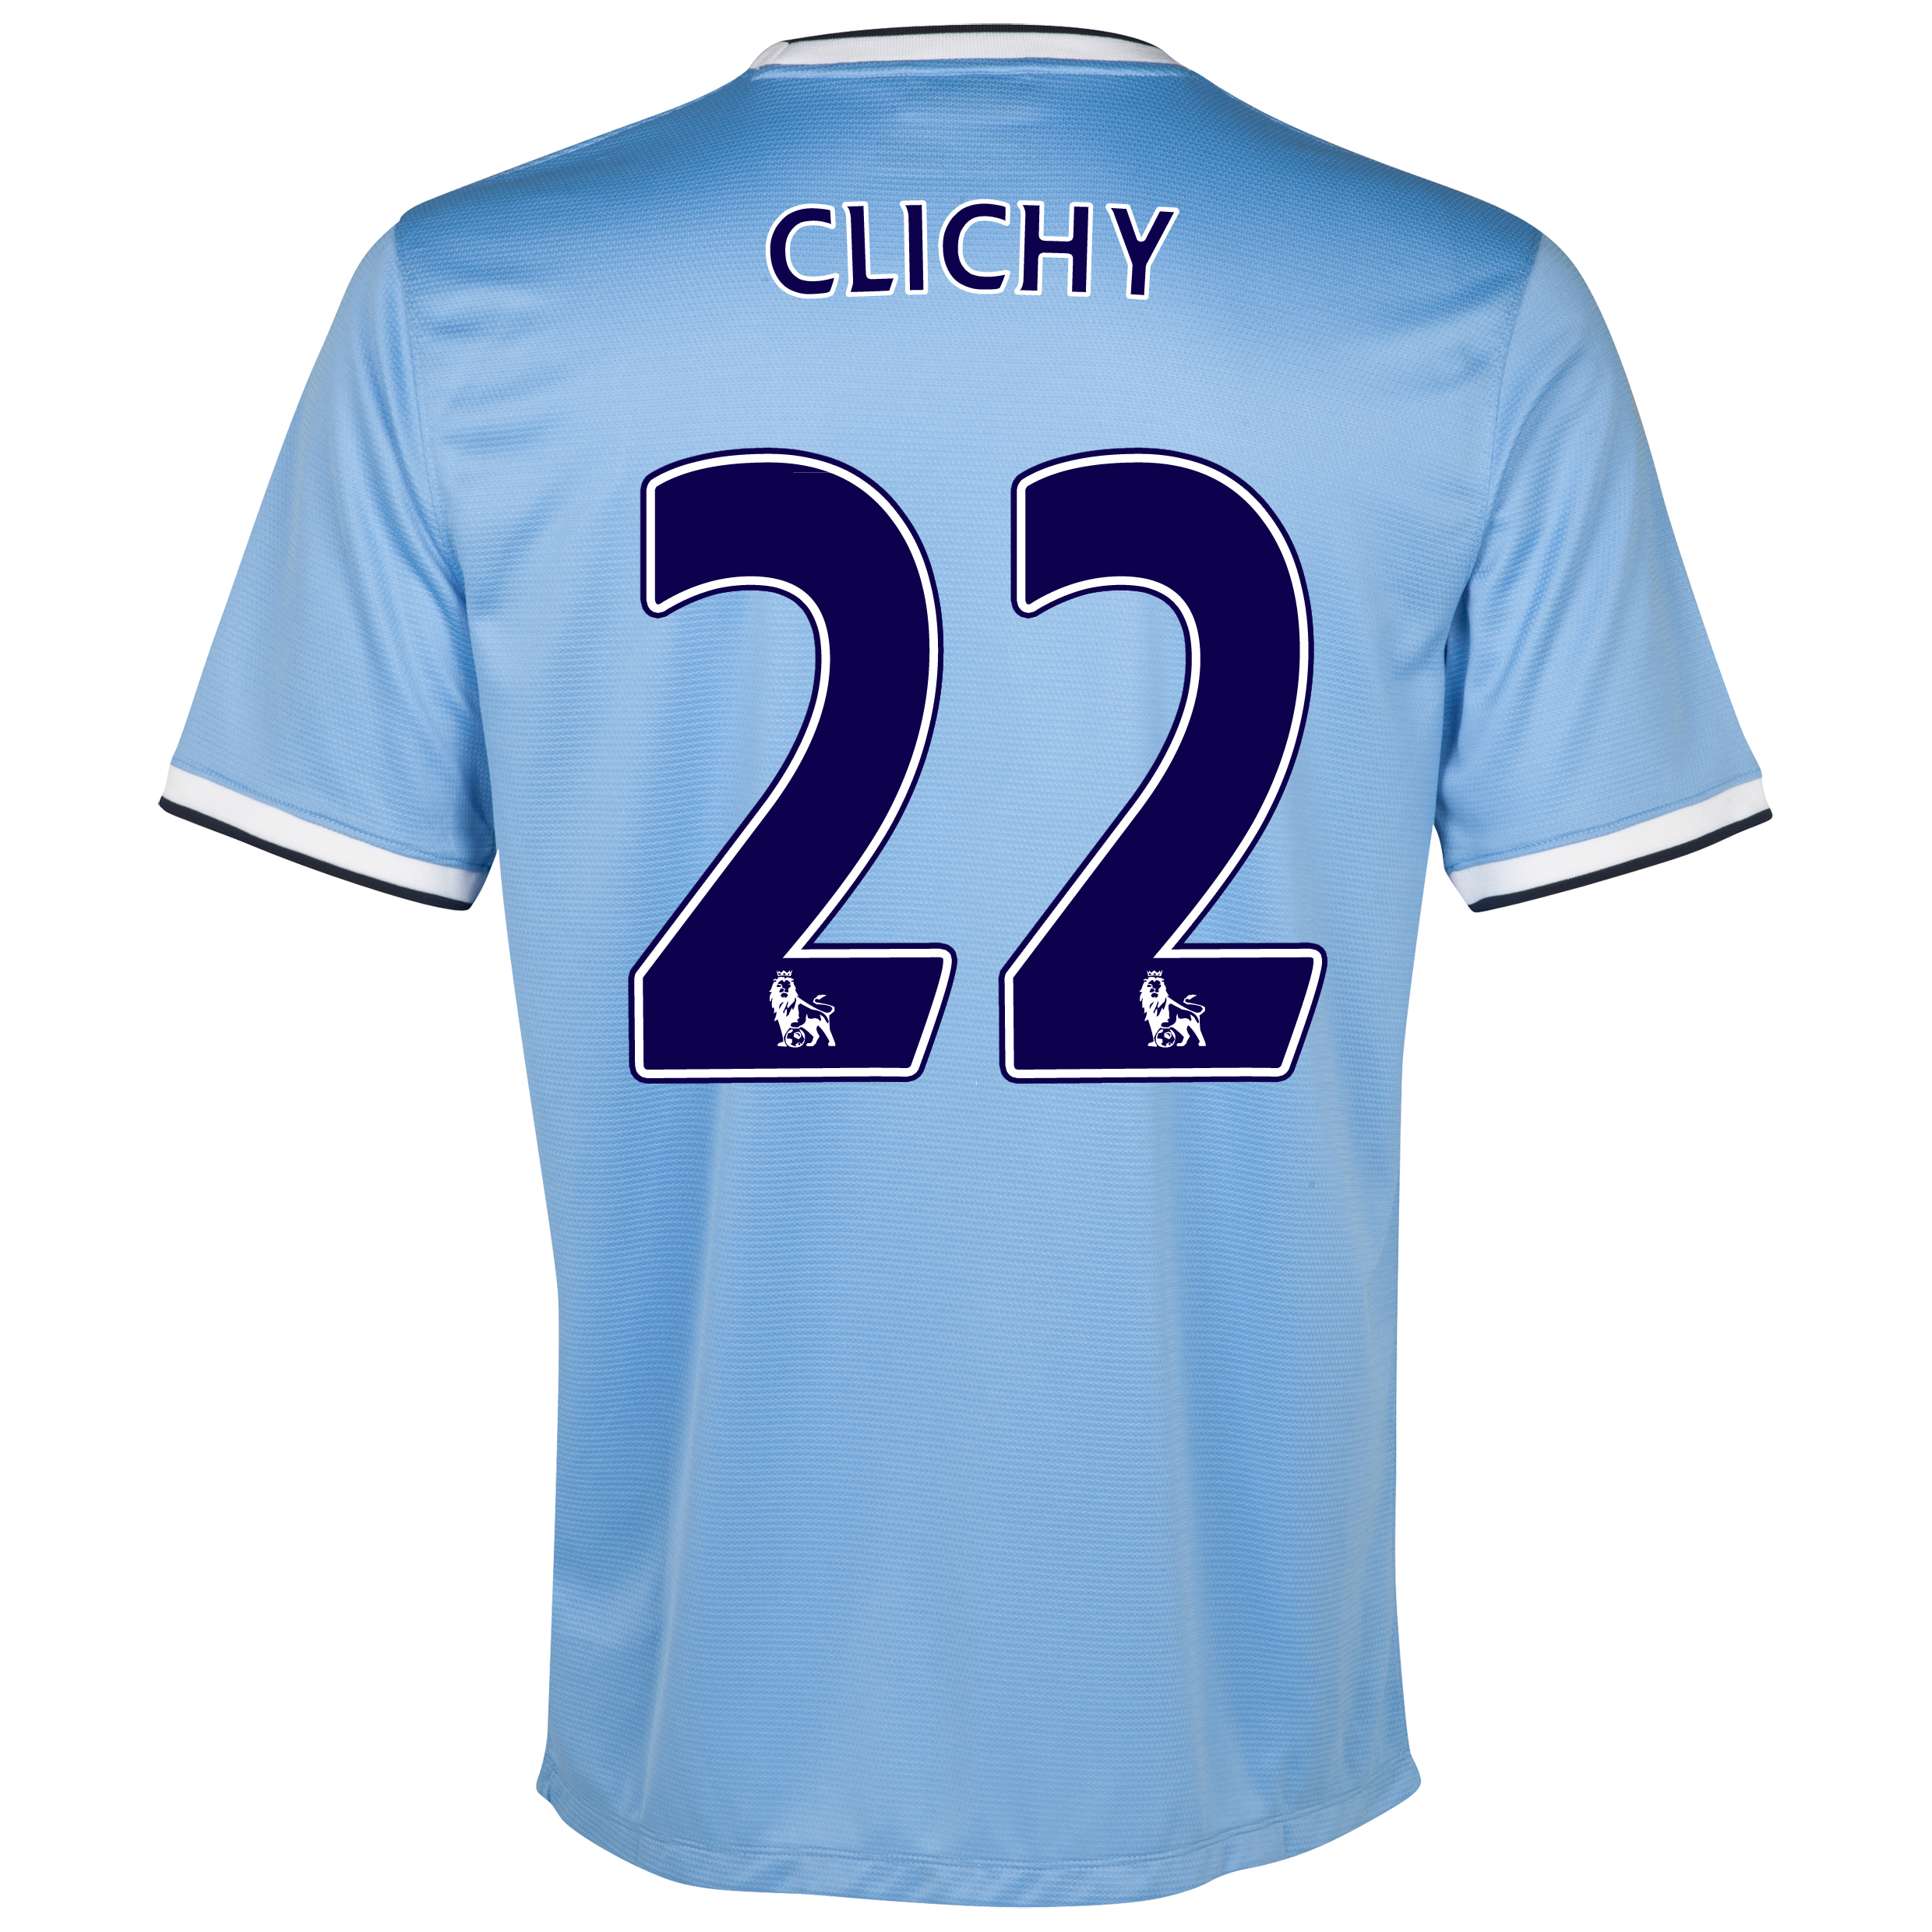 Manchester City Home Shirt 2013/14 with Clichy 22 printing